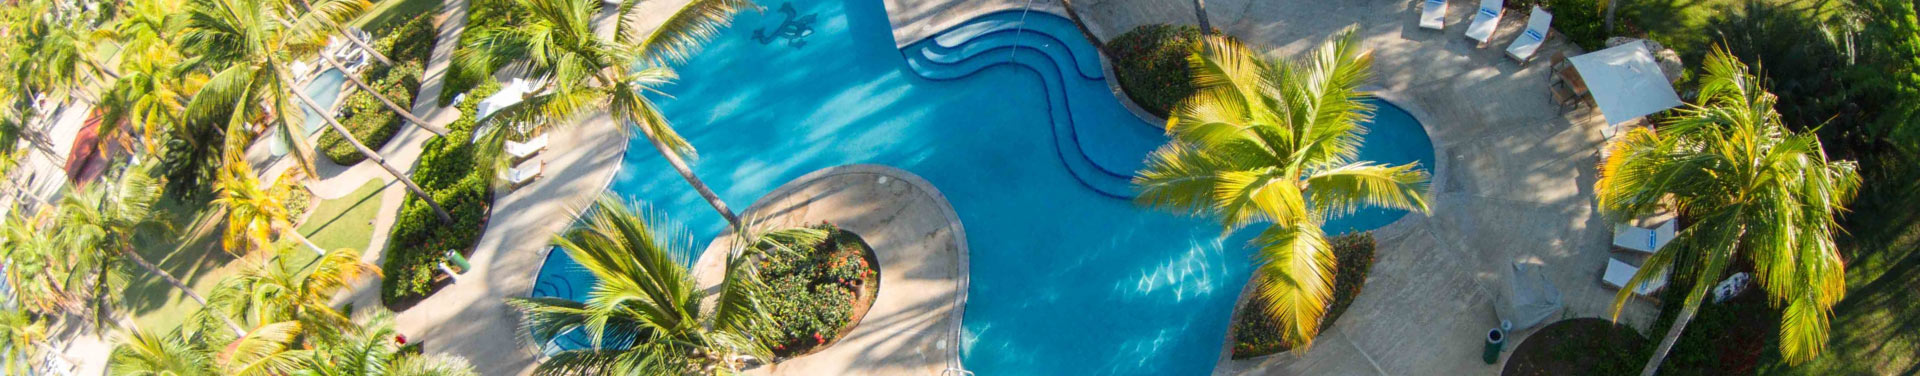 71024-puertorico-pool-premiercollection